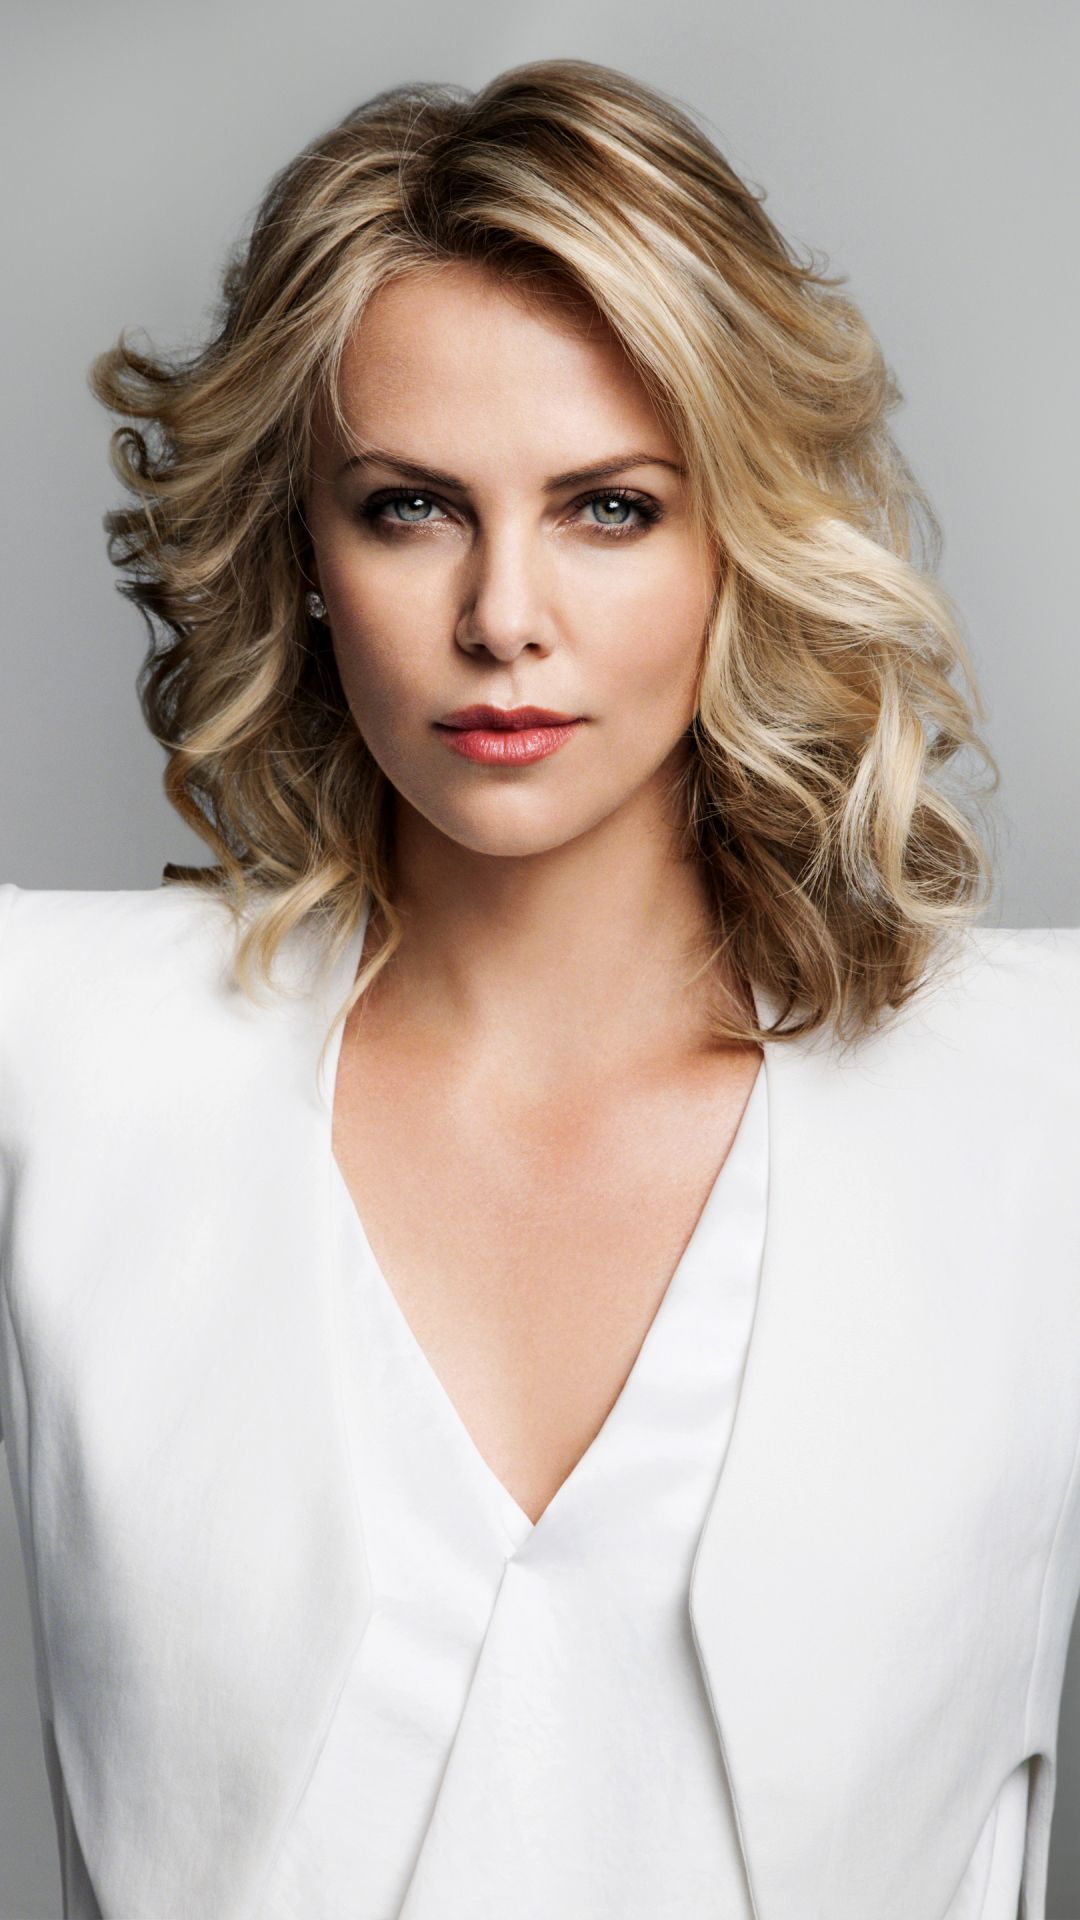 Charlize Theron Wallpaper Charlize Theron Female Celebrities 118